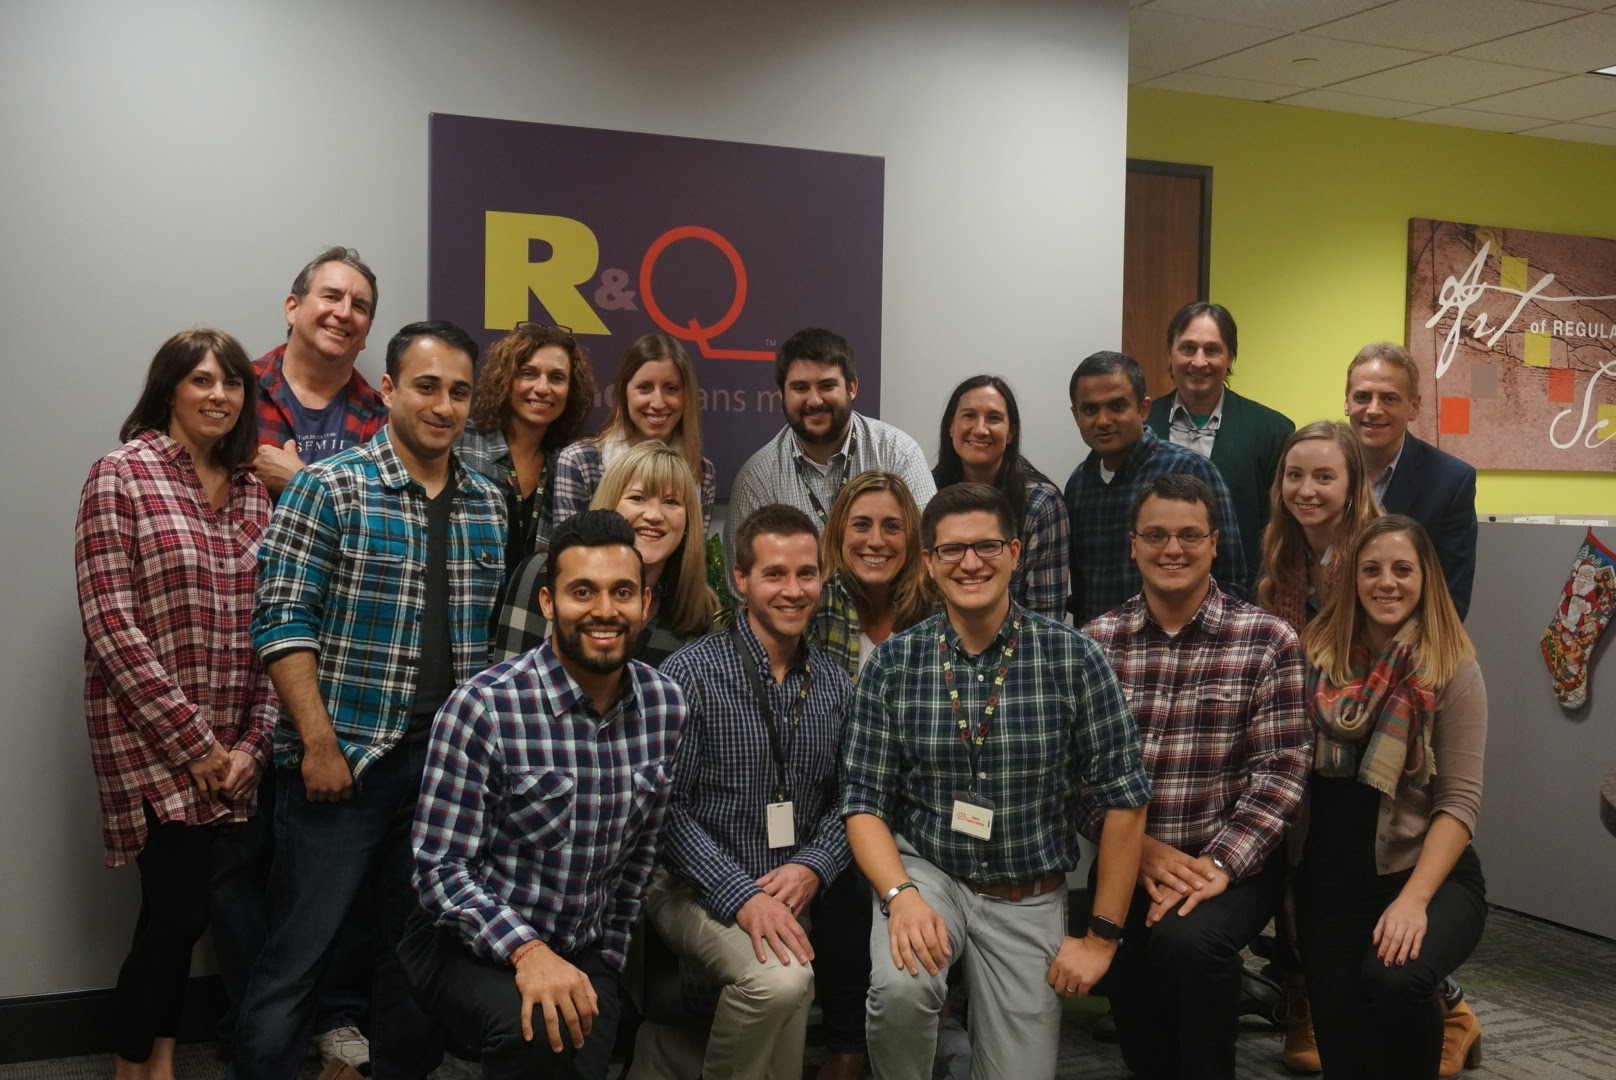 Employee Flannel Friday